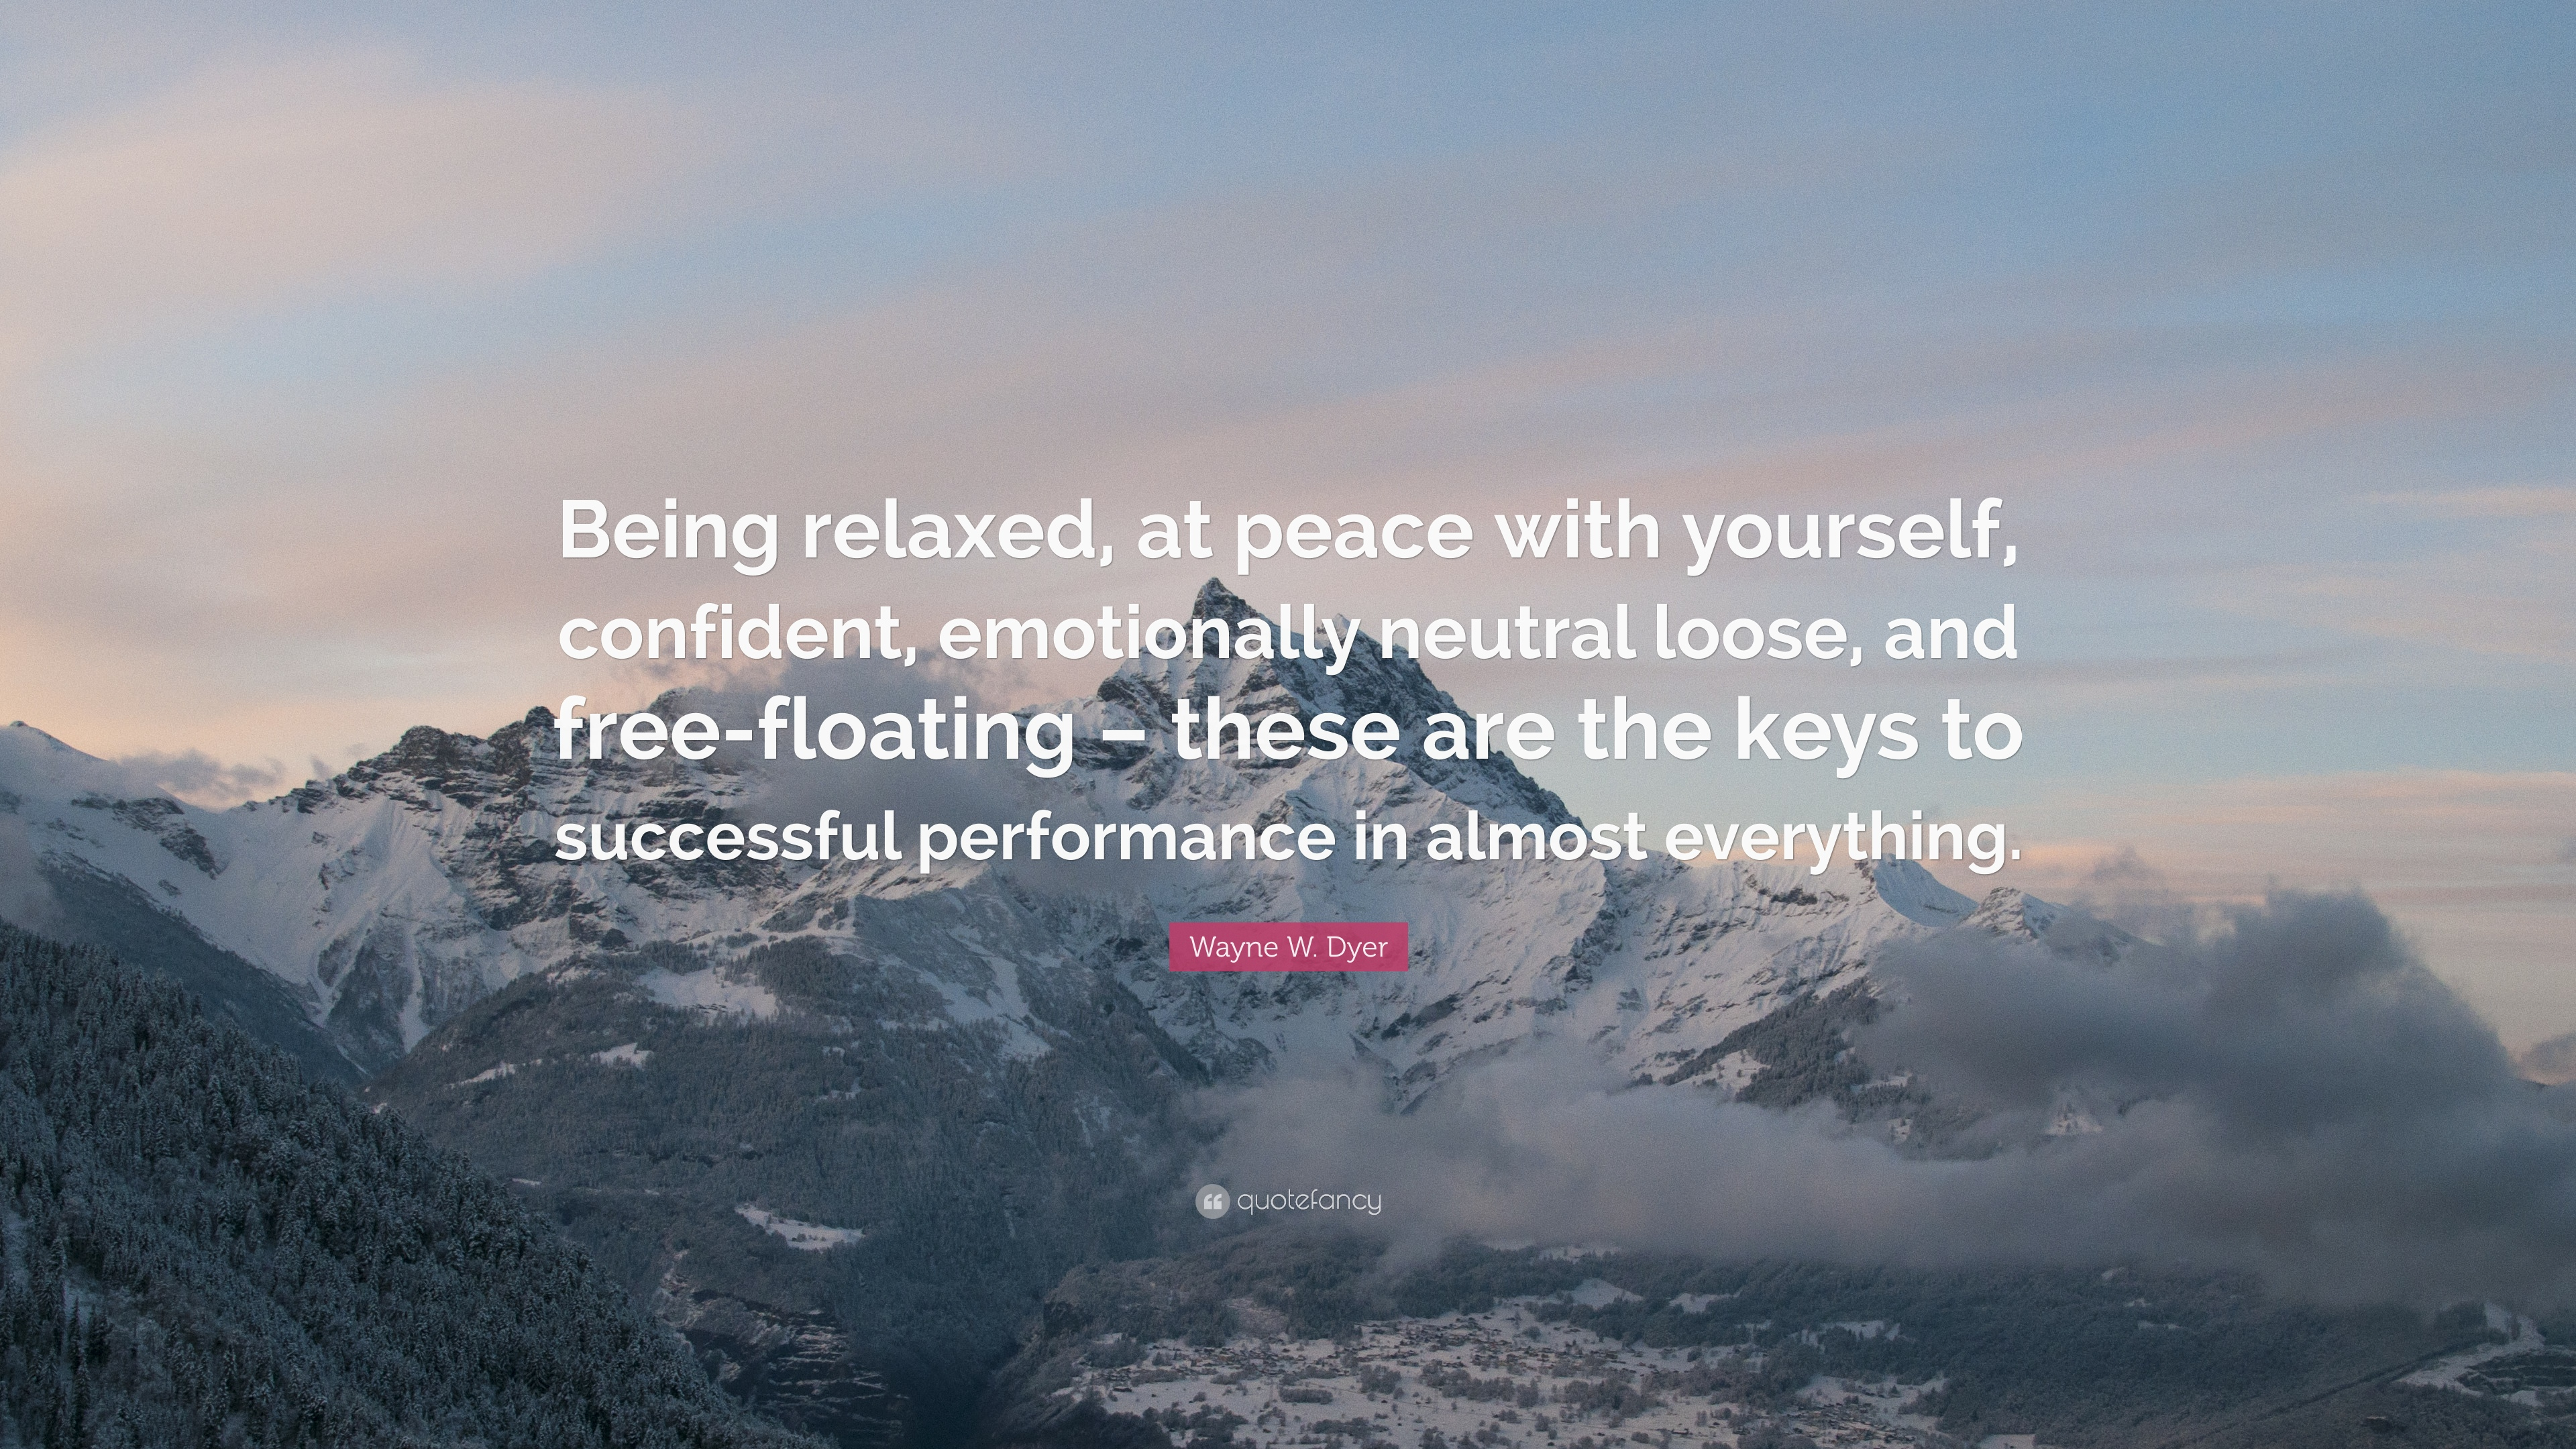 Wayne W Dyer Quote Being Relaxed At Peace With Yourself